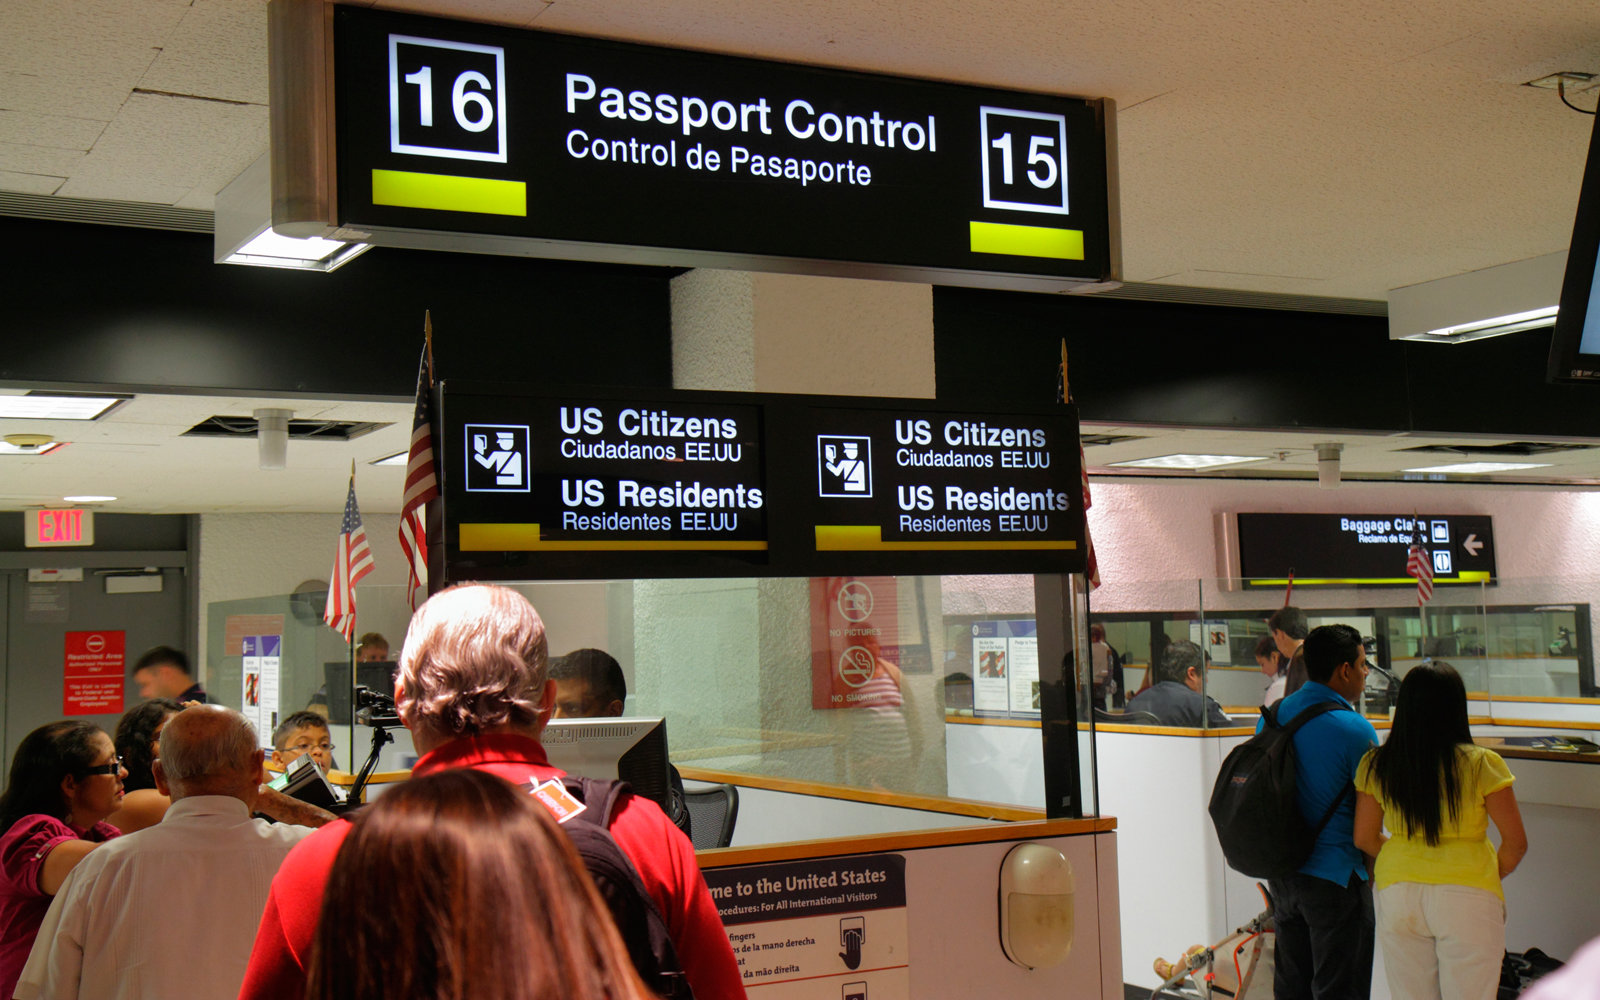 Miami International Airport, passengers entering Passport Control